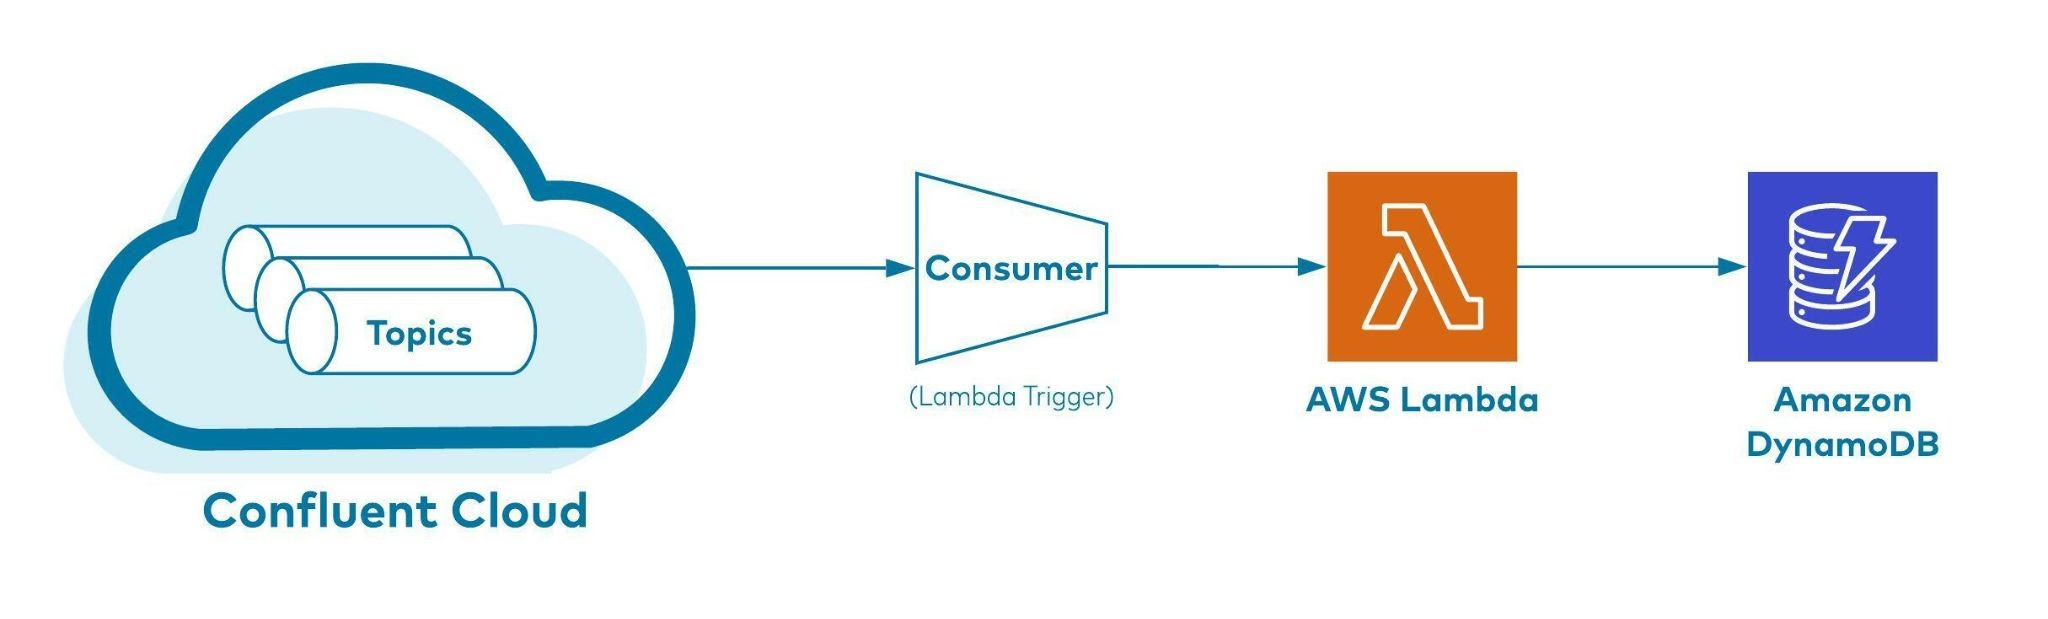 How event data flows from Confluent Cloud Kafka topics into DynamoDB